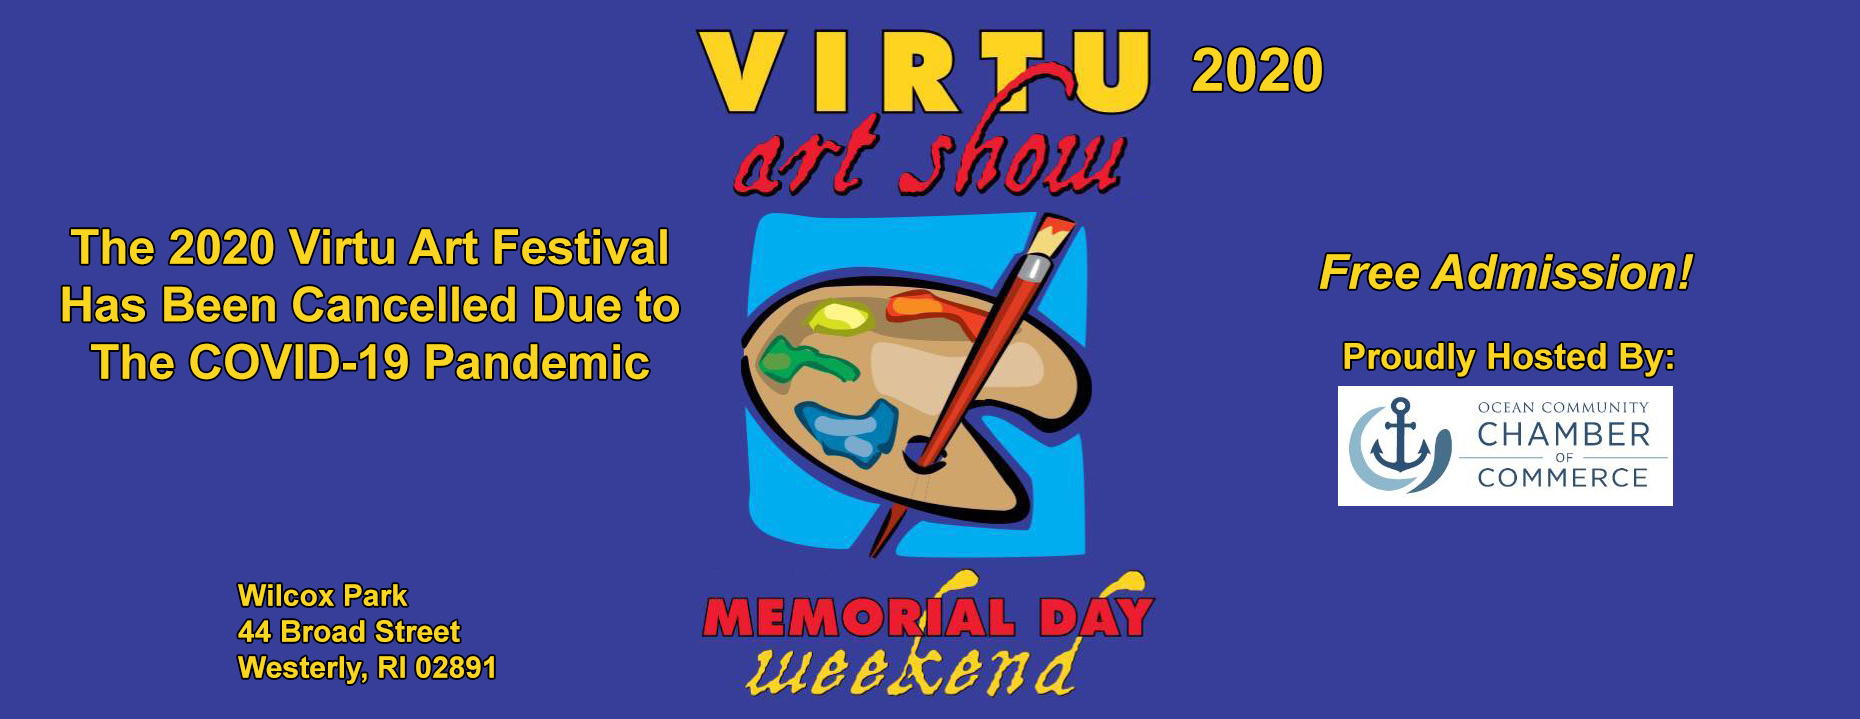 Virtu Art Festival